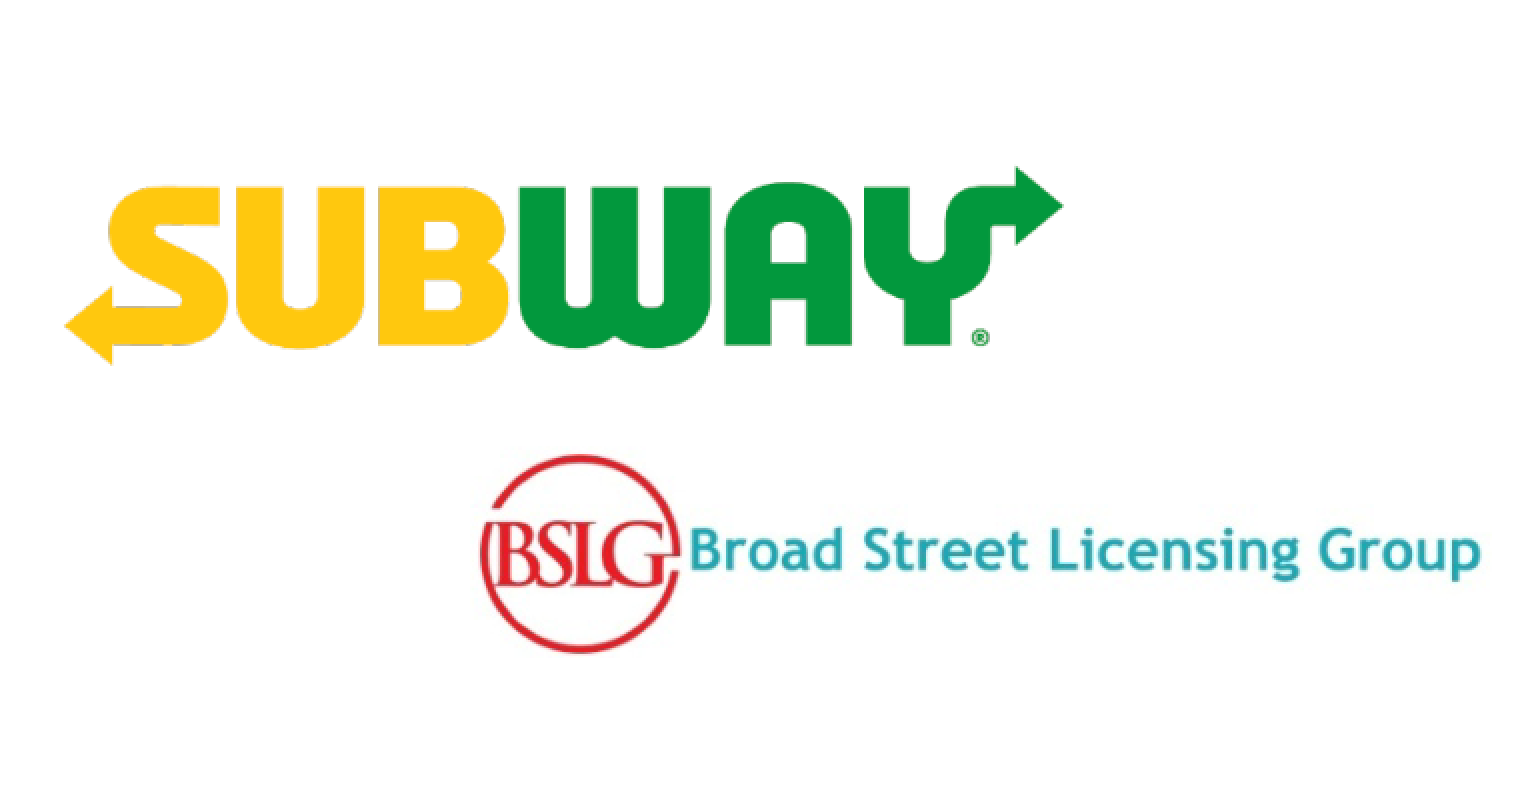 Subway Restaurants to Deliver Consumer Products with Broad Street Licensing